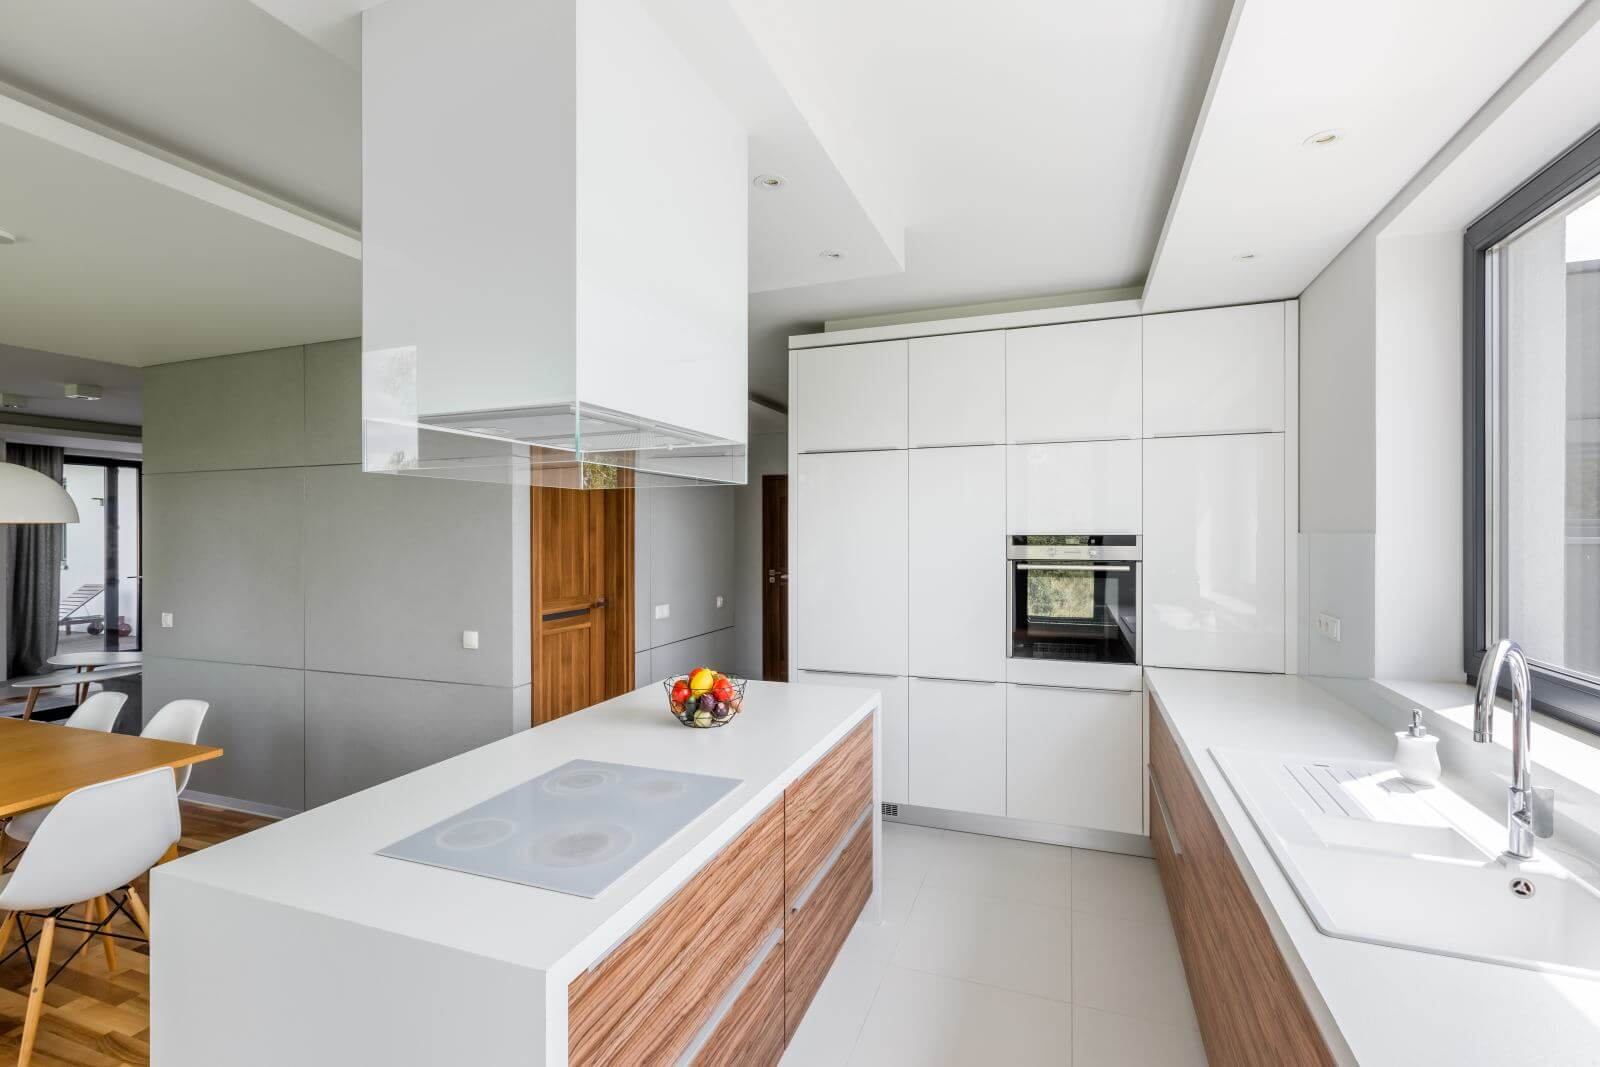 Luxurious white kitchen with island and wooden cupboards